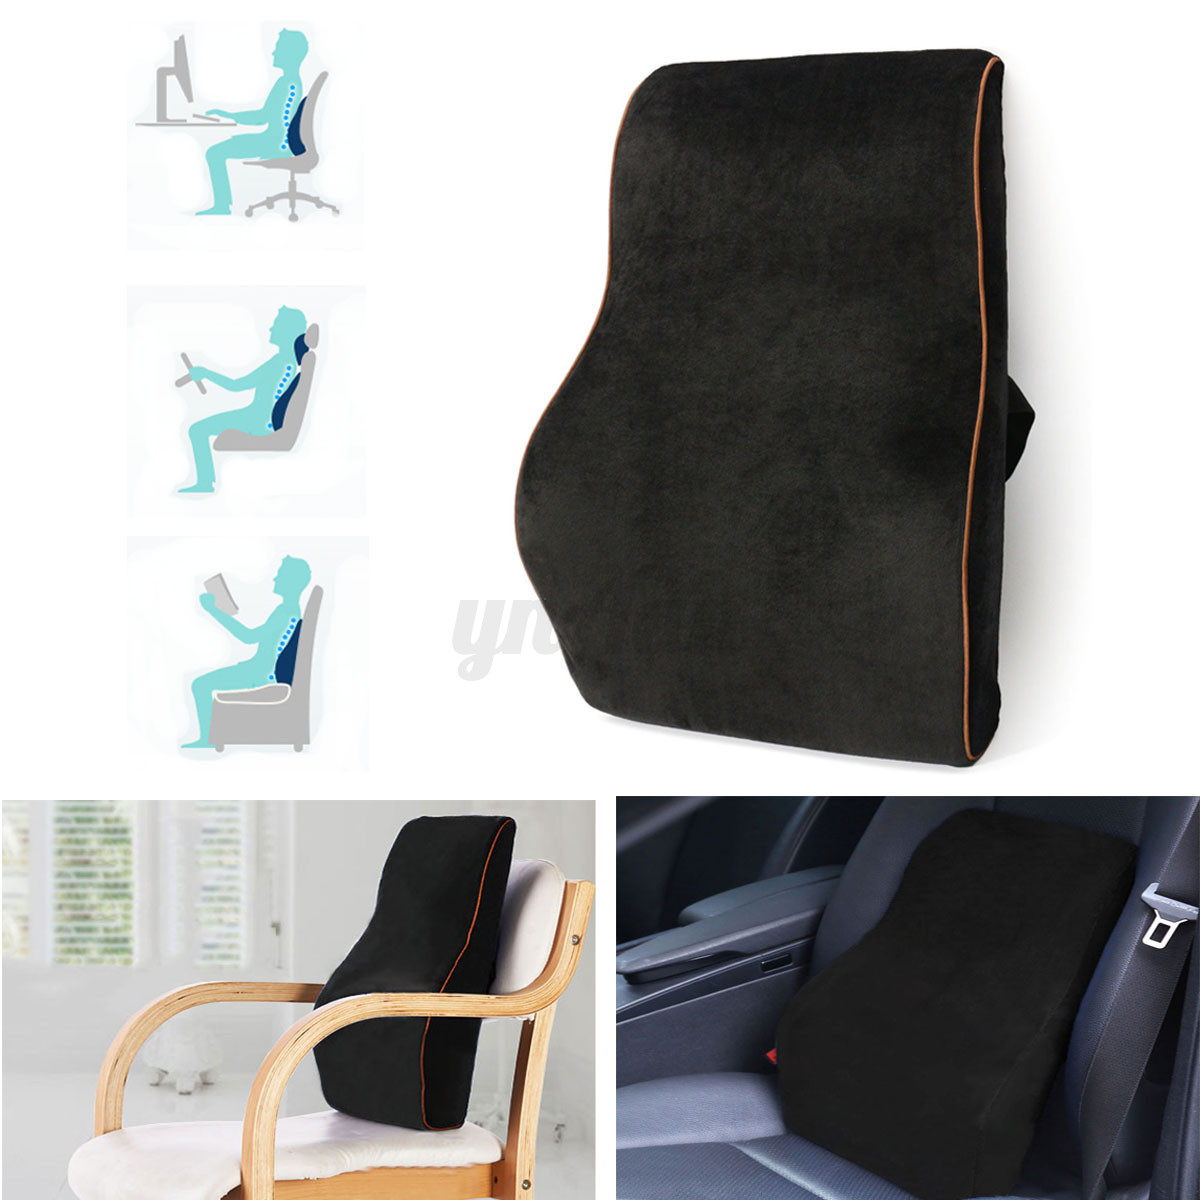 memory foam car seat back waist pillow cushion lumbar support home office chair ebay. Black Bedroom Furniture Sets. Home Design Ideas